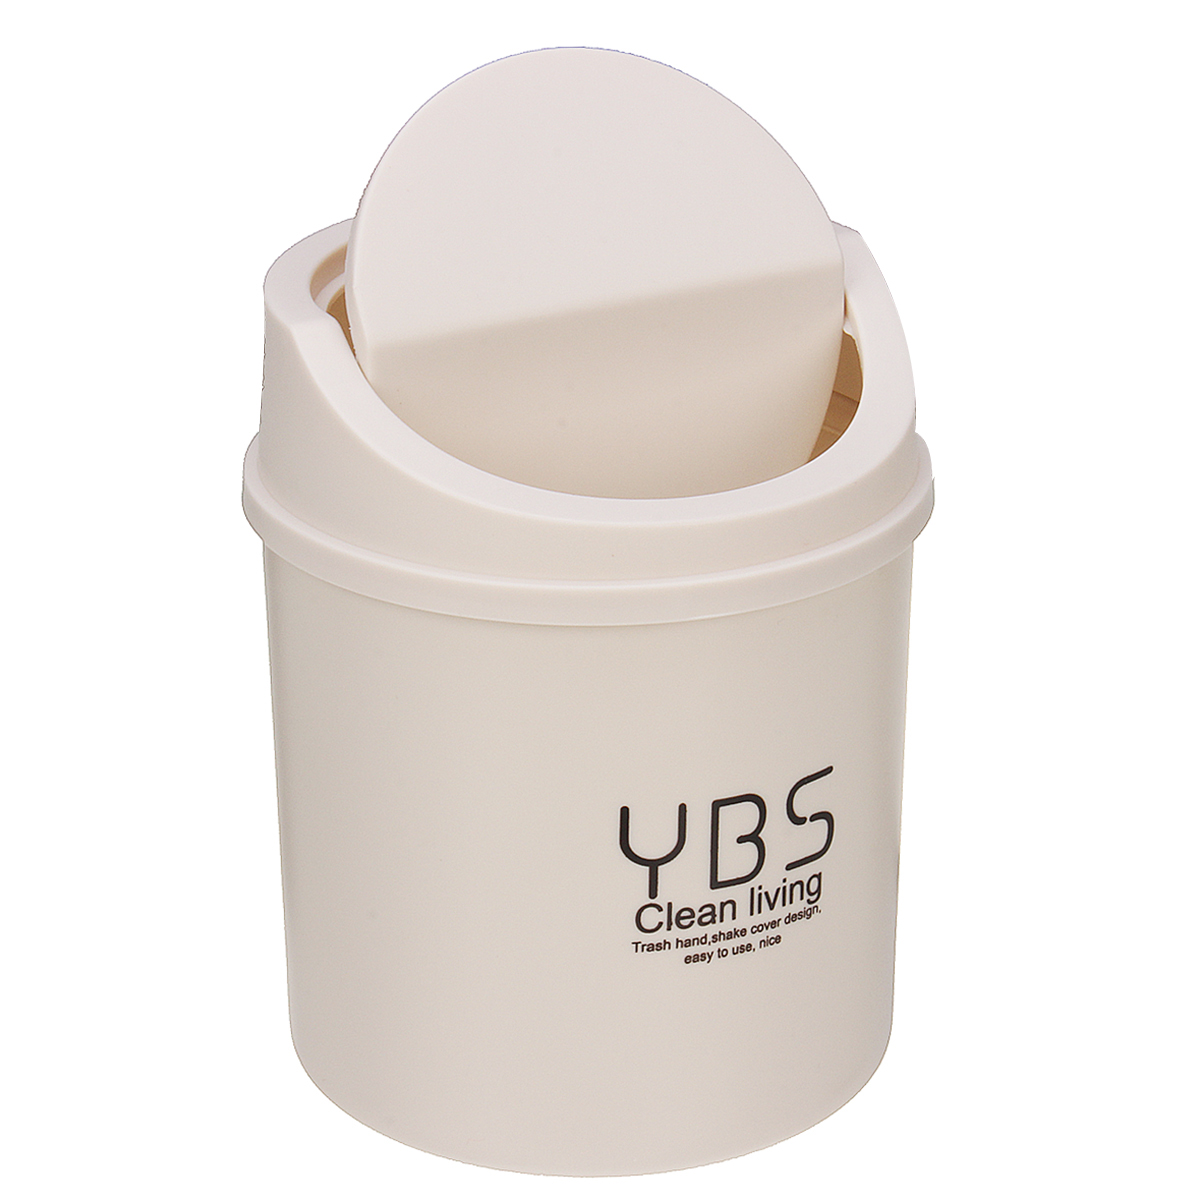 Desk Waste Bin Trash Can Desktop Garbage Basket Table Style Shake Lid Home-US